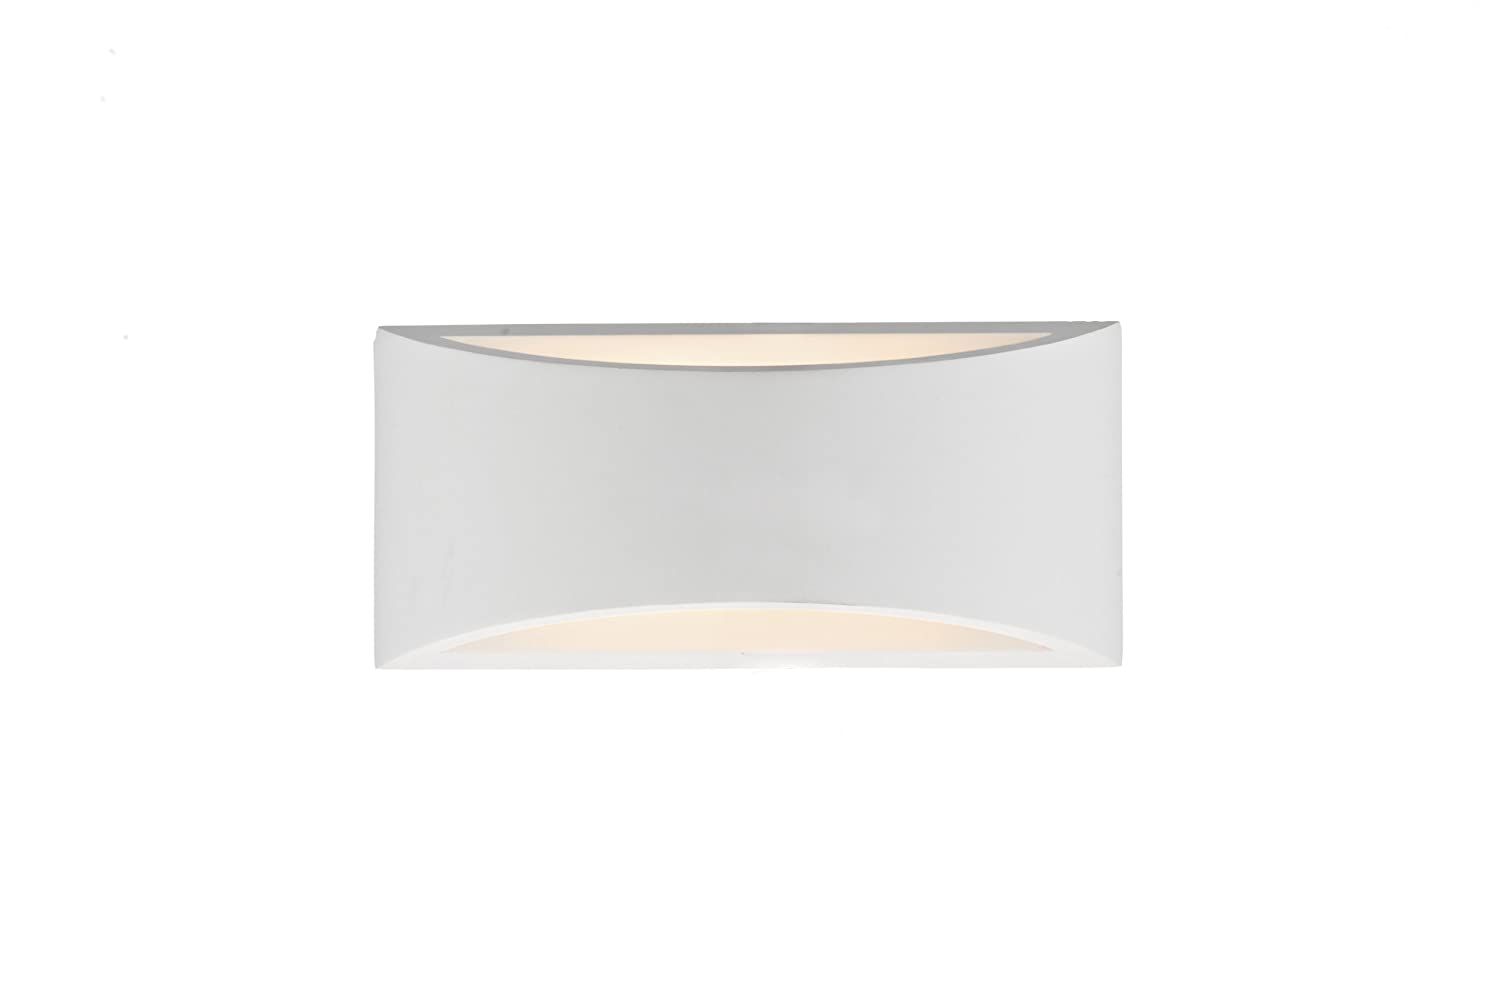 Dar hov372 hove large 2 light wall washer amazon lighting audiocablefo